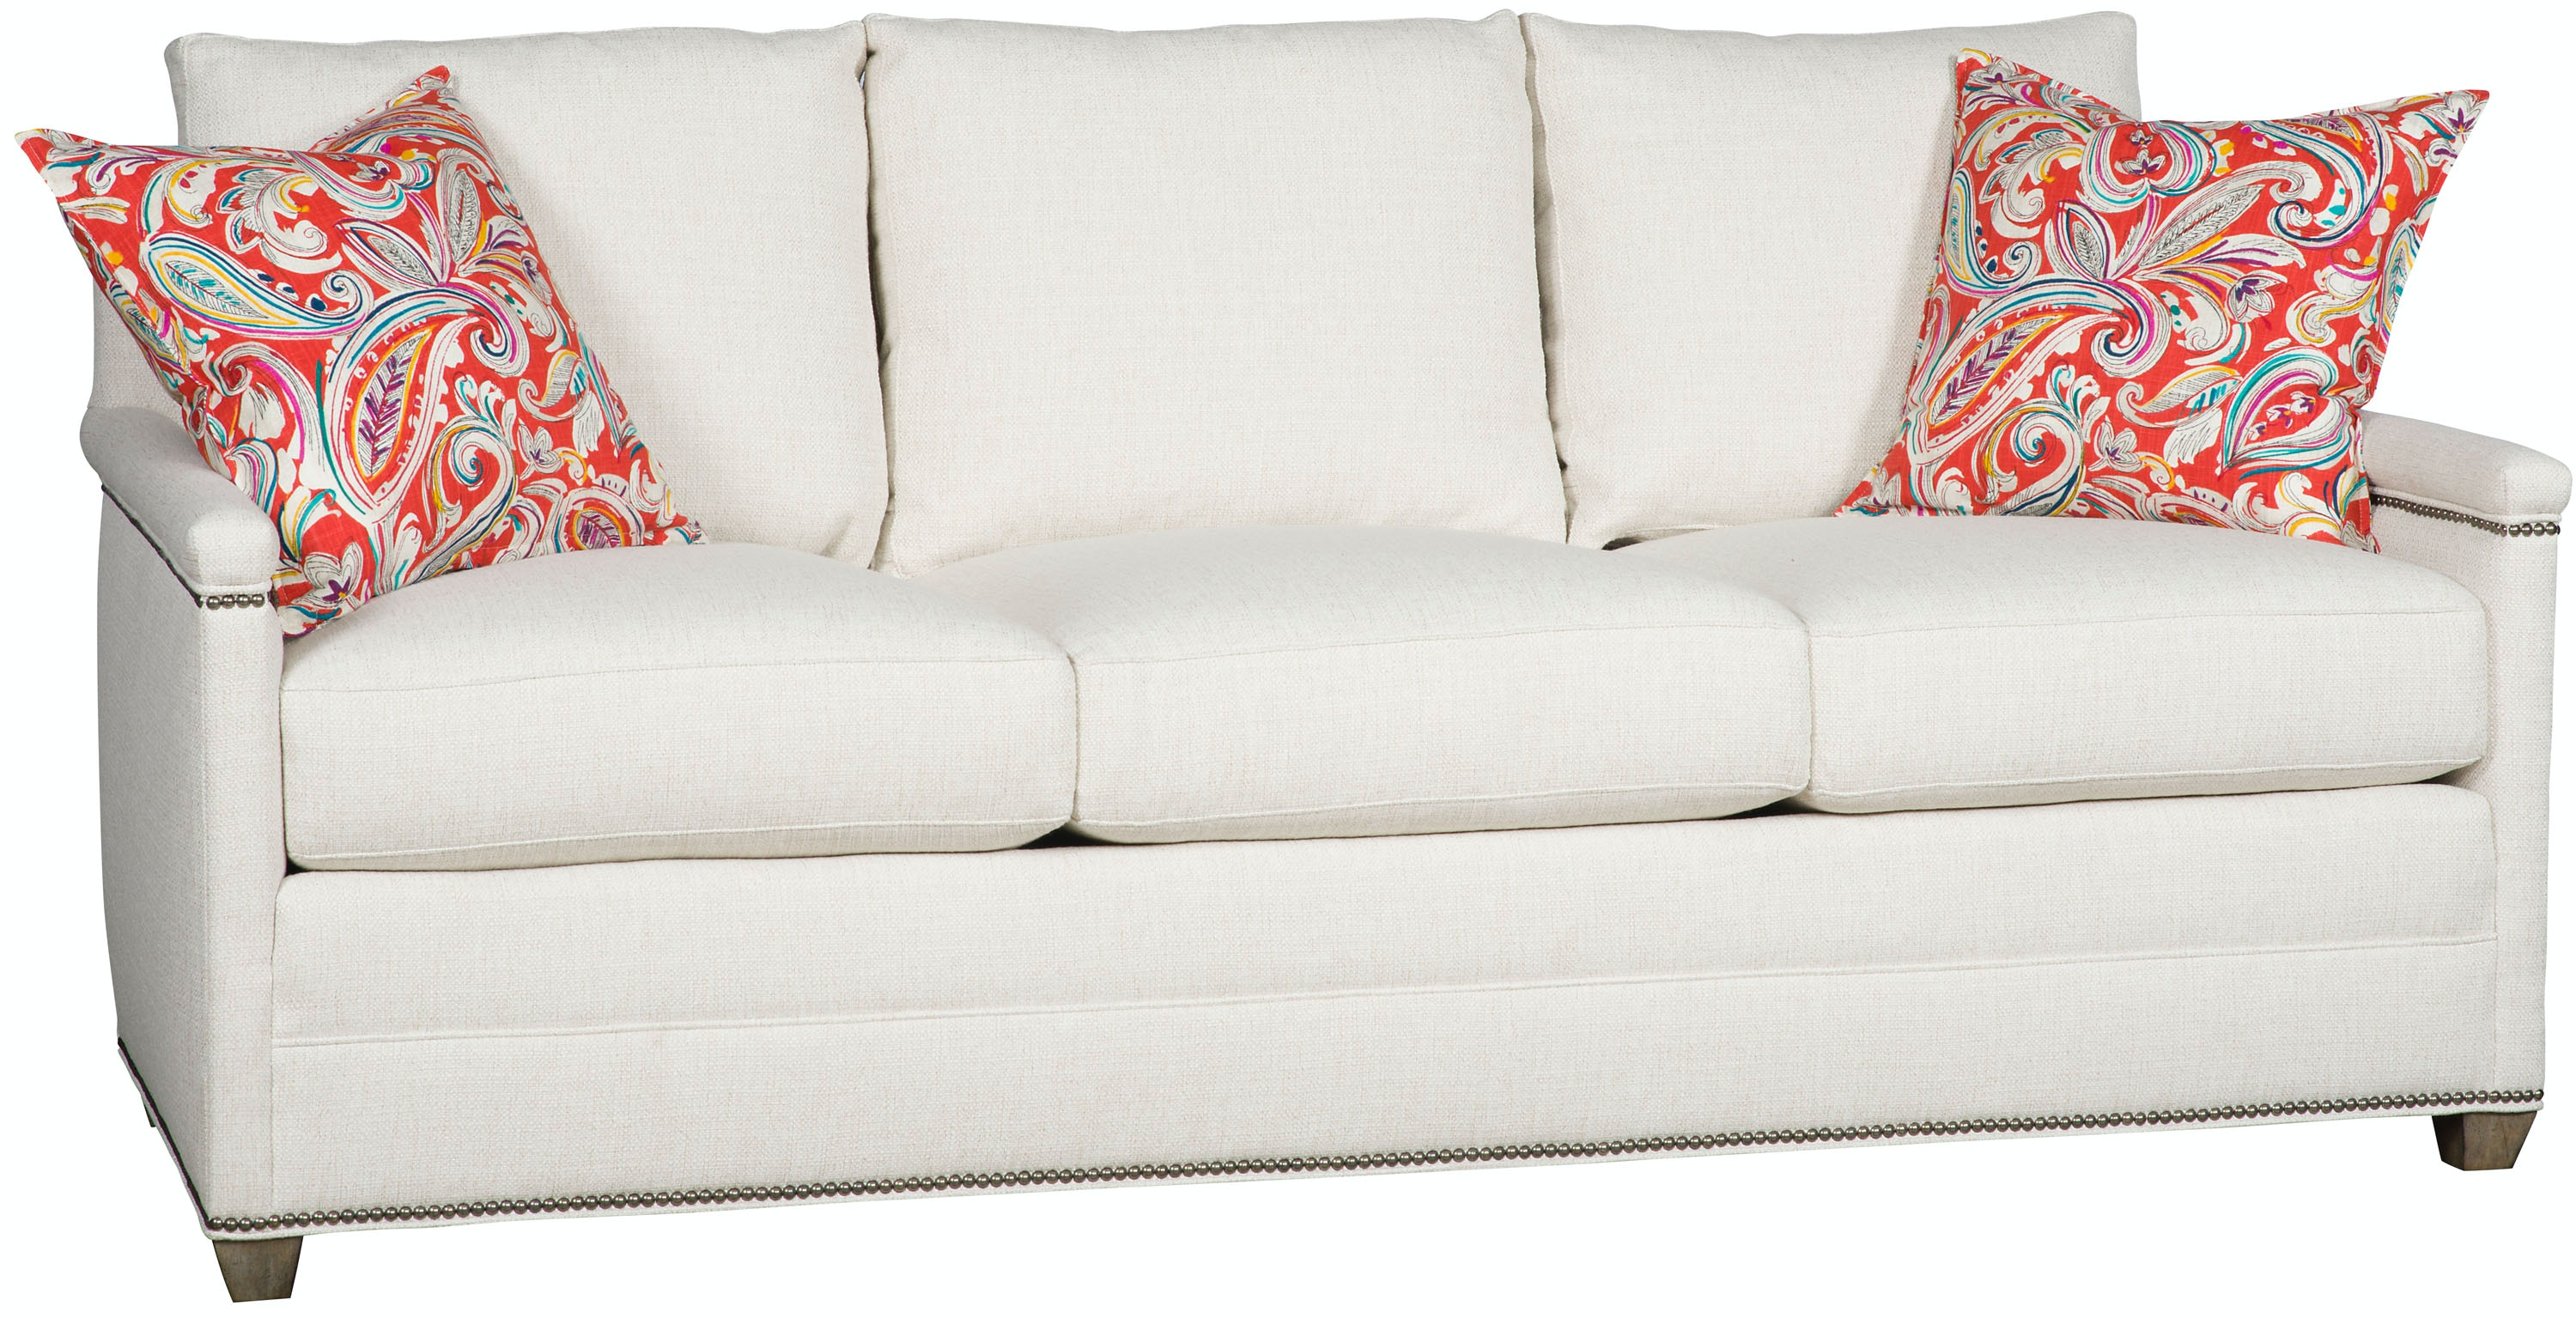 Vanguard Connelly Springs Sofa 656 S